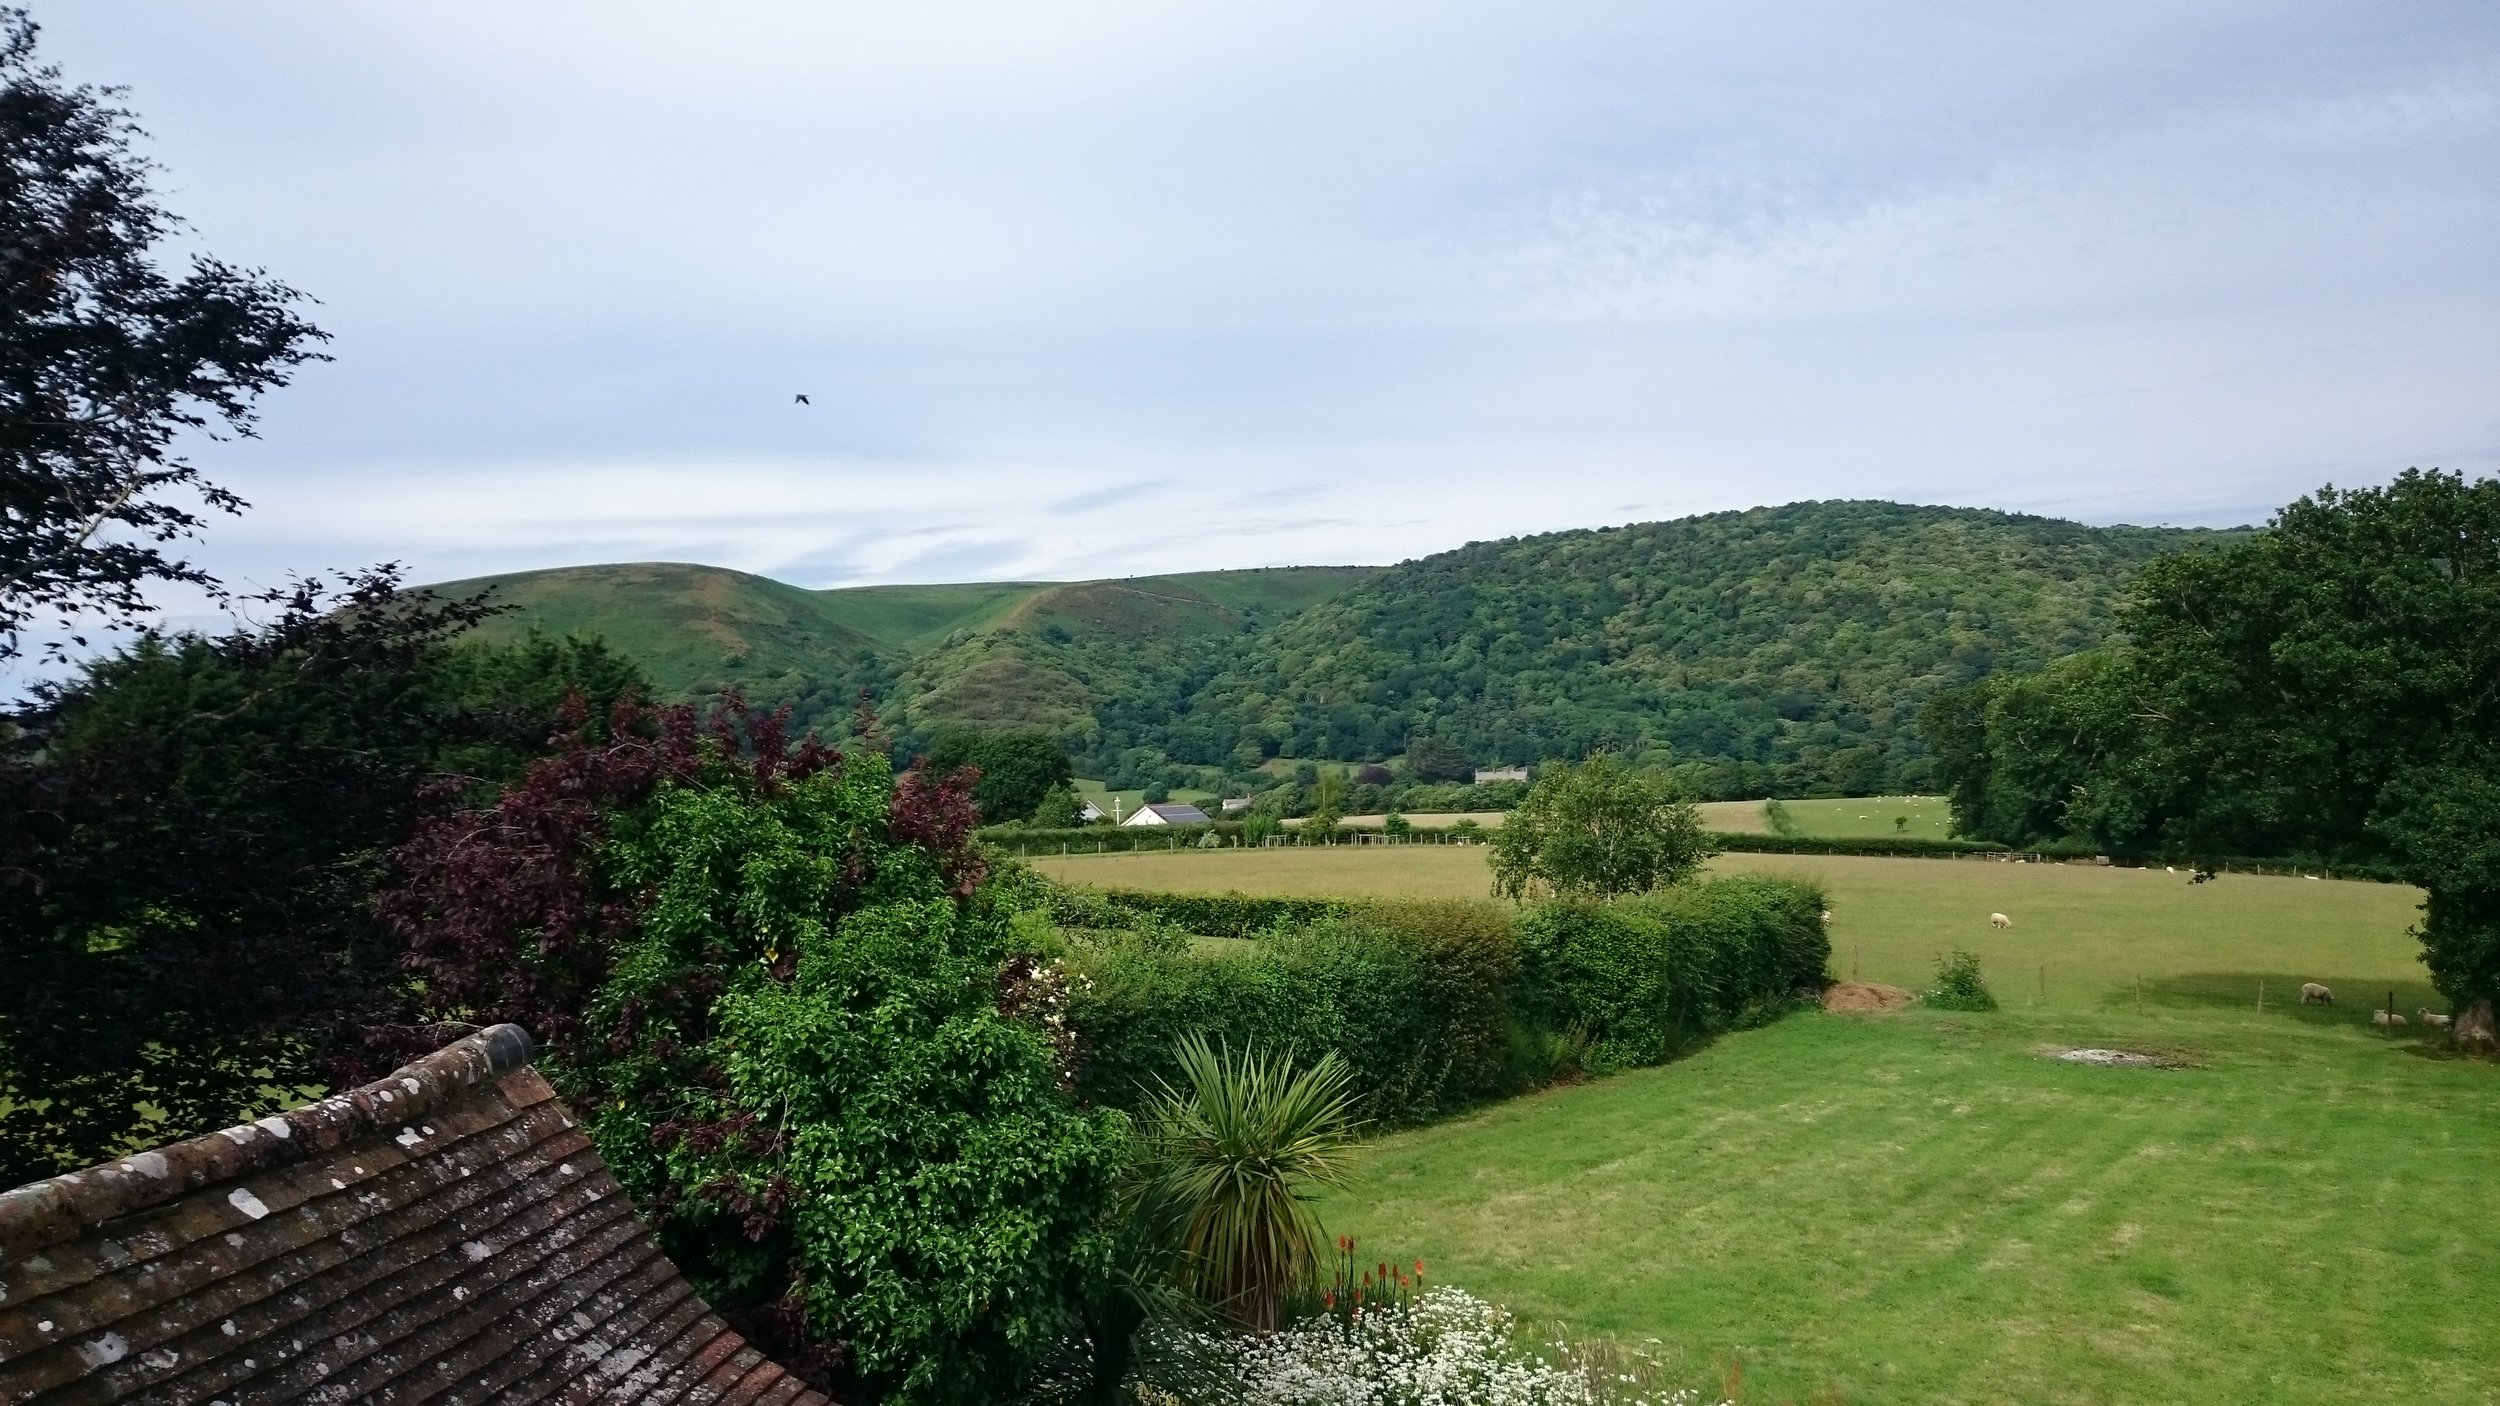 Panoramic views looking towards Bossington Hill